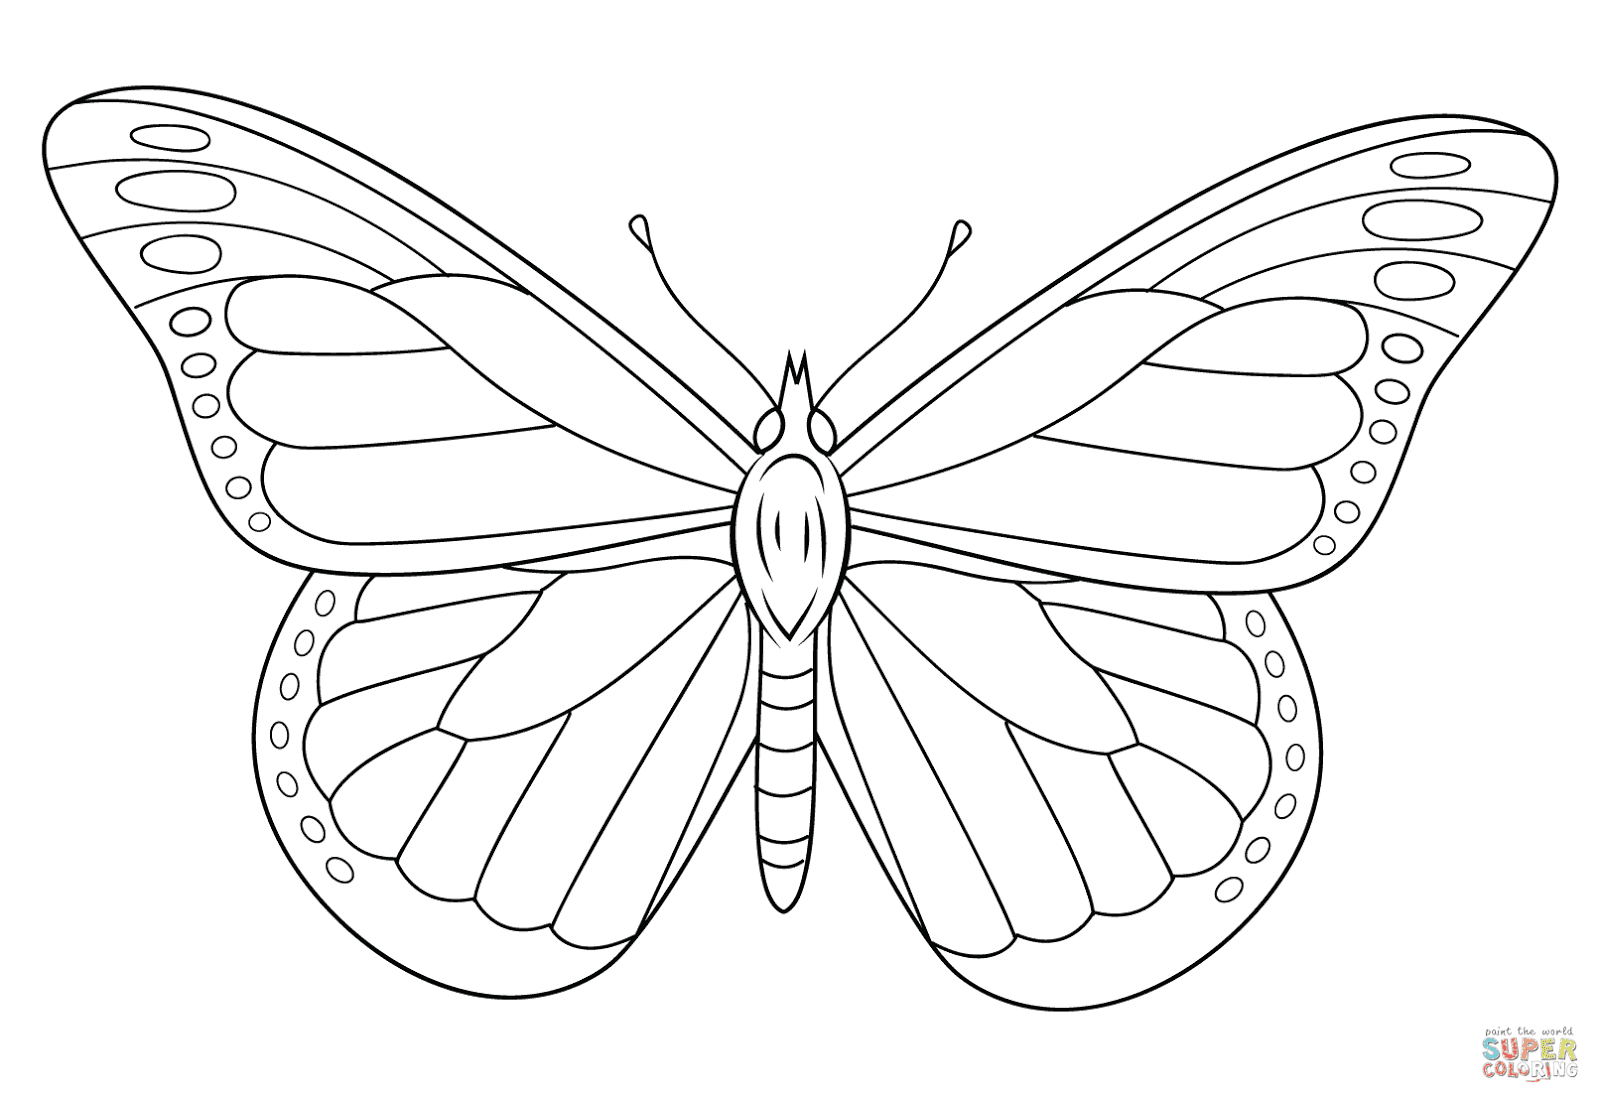 21 Monarch butterfly Coloring Pages Collection - Coloring Sheets